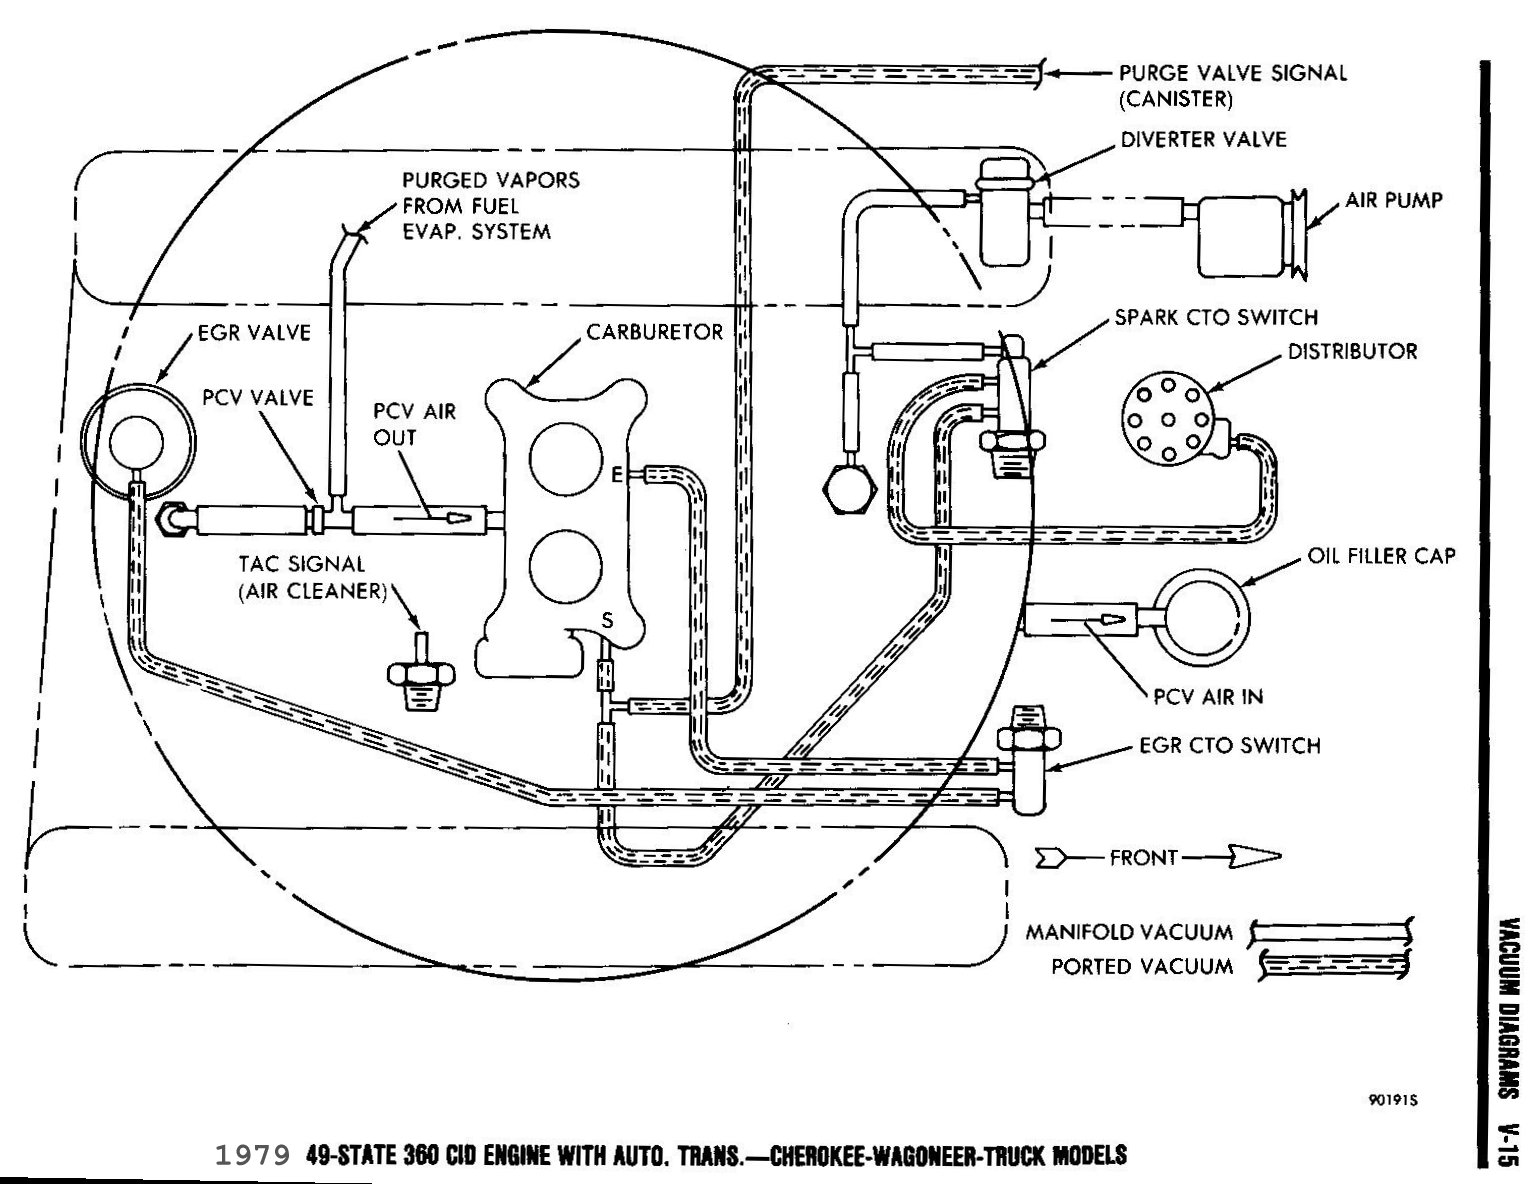 1983 Cj7 Vacuum Line Diagram Automotive Wiring Diagram \u2022 Jeep CJ7  Wiring-Diagram 1983 Jeep Cj7 Carburetor Diagram